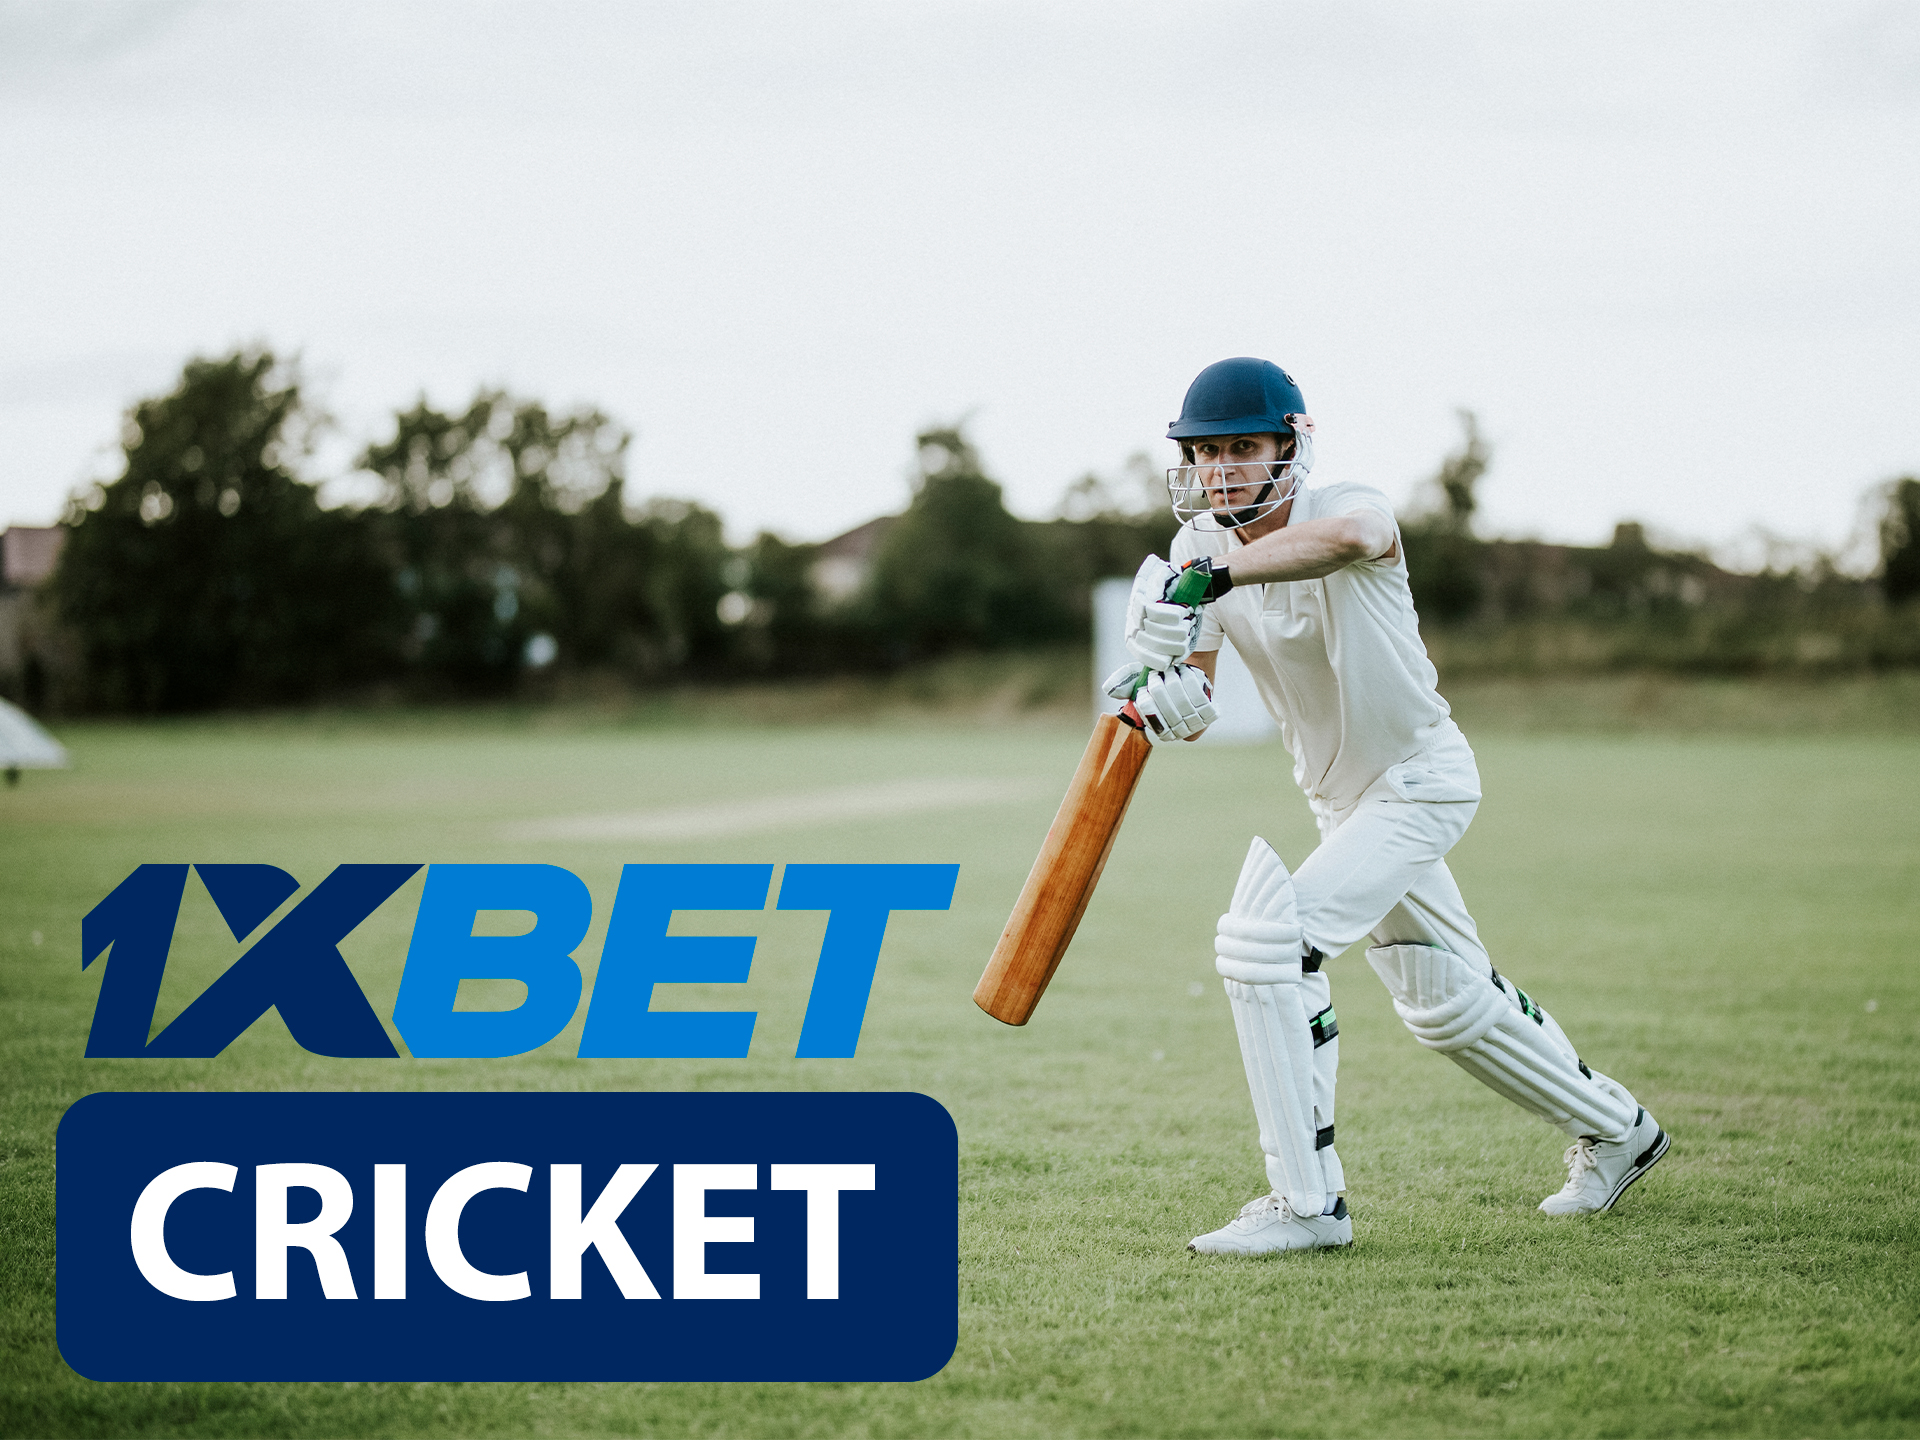 Start betting on cricket with 1xBet